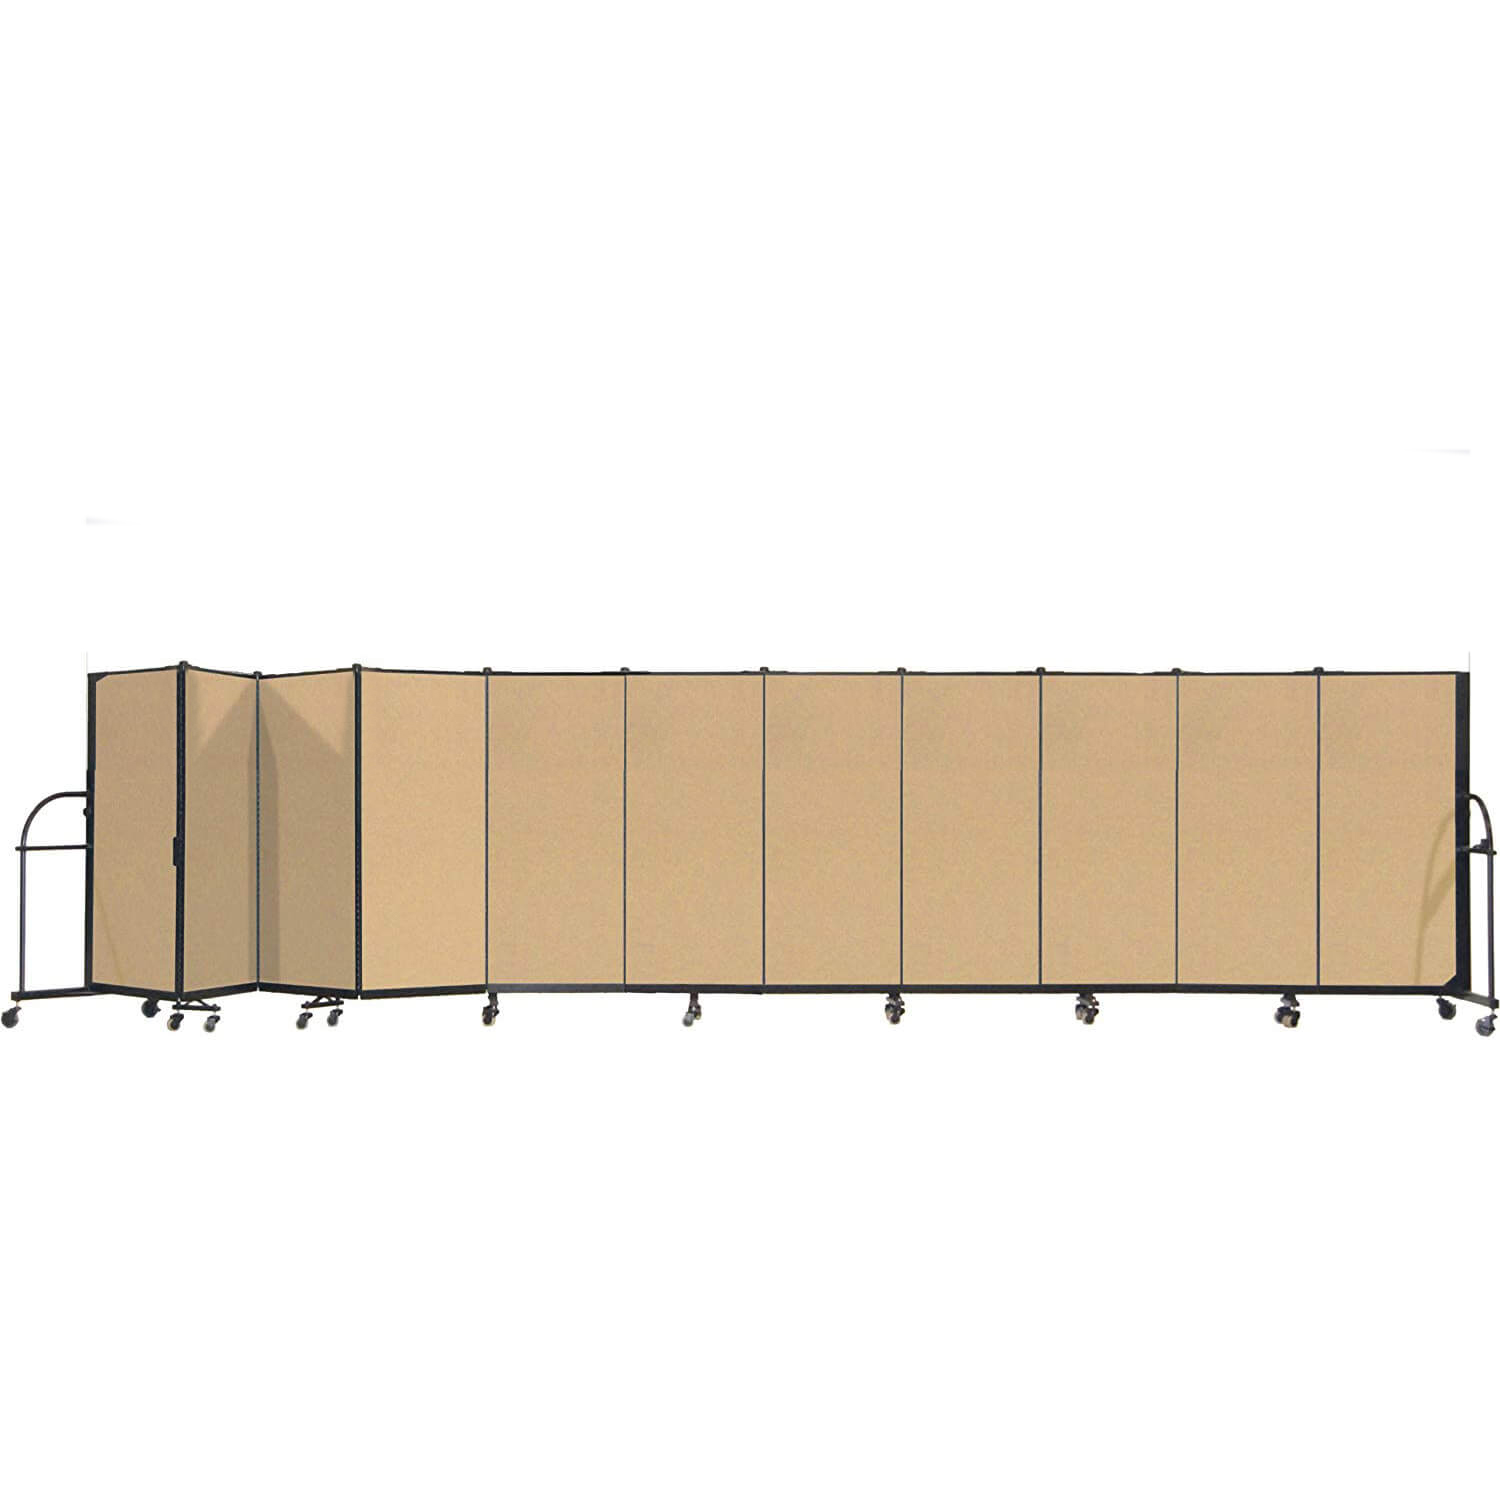 Panel room dividers CUB QSCFSL4011DW RCS 1 2